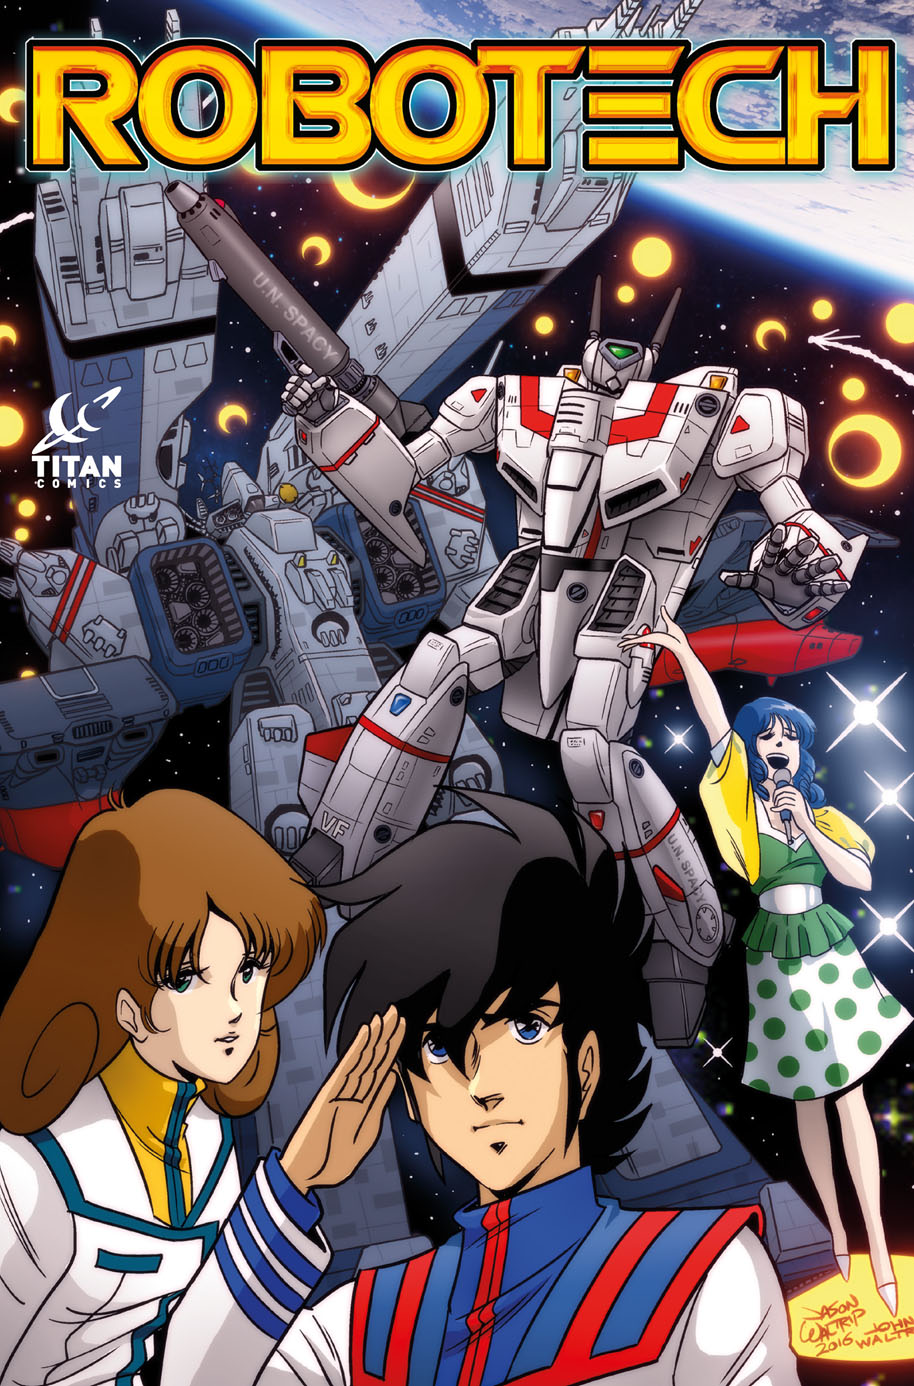 Robotech_Cover - Waltrip Brothers Cover